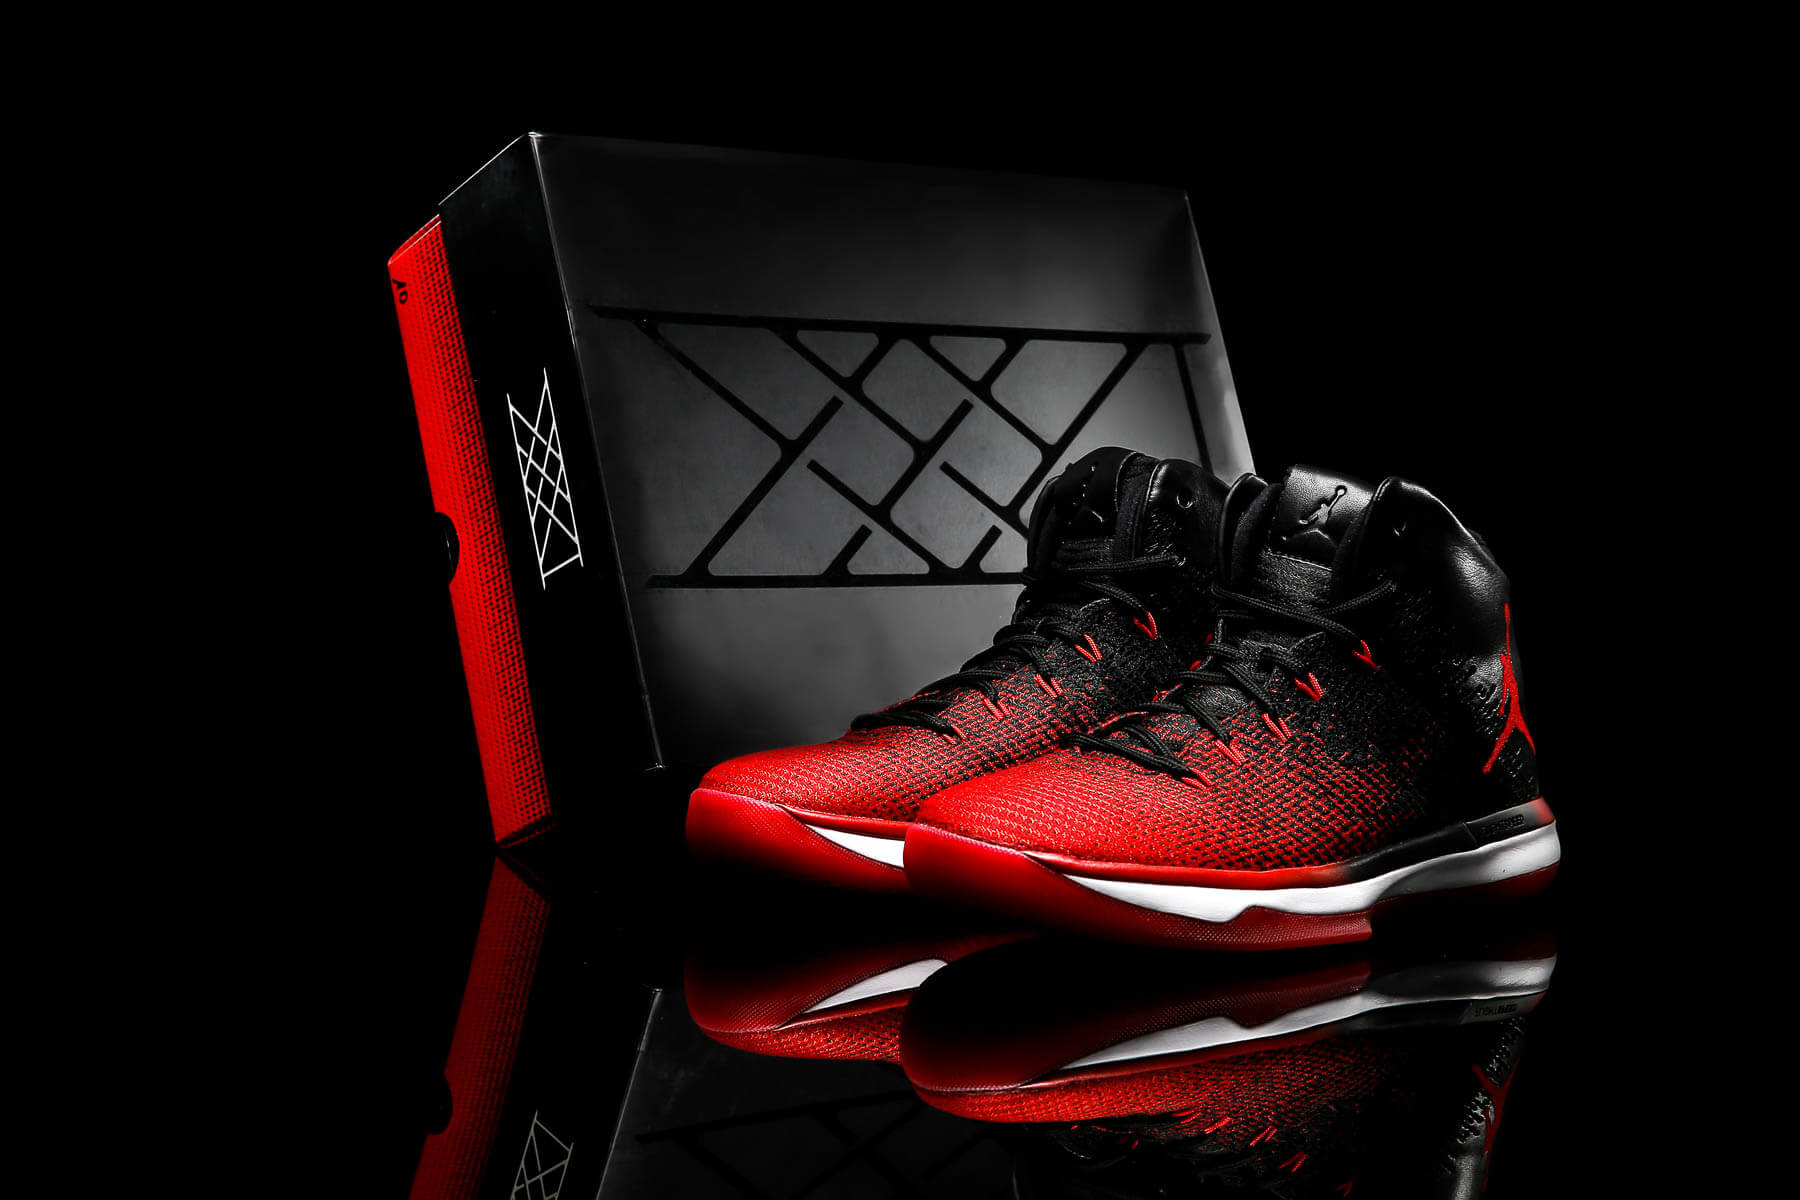 Basketbal 006Chaussures 845403 845403 Nike 006Chaussures Nike Basketbal De Nike De De 006Chaussures 845403 cTKuFJ5l13